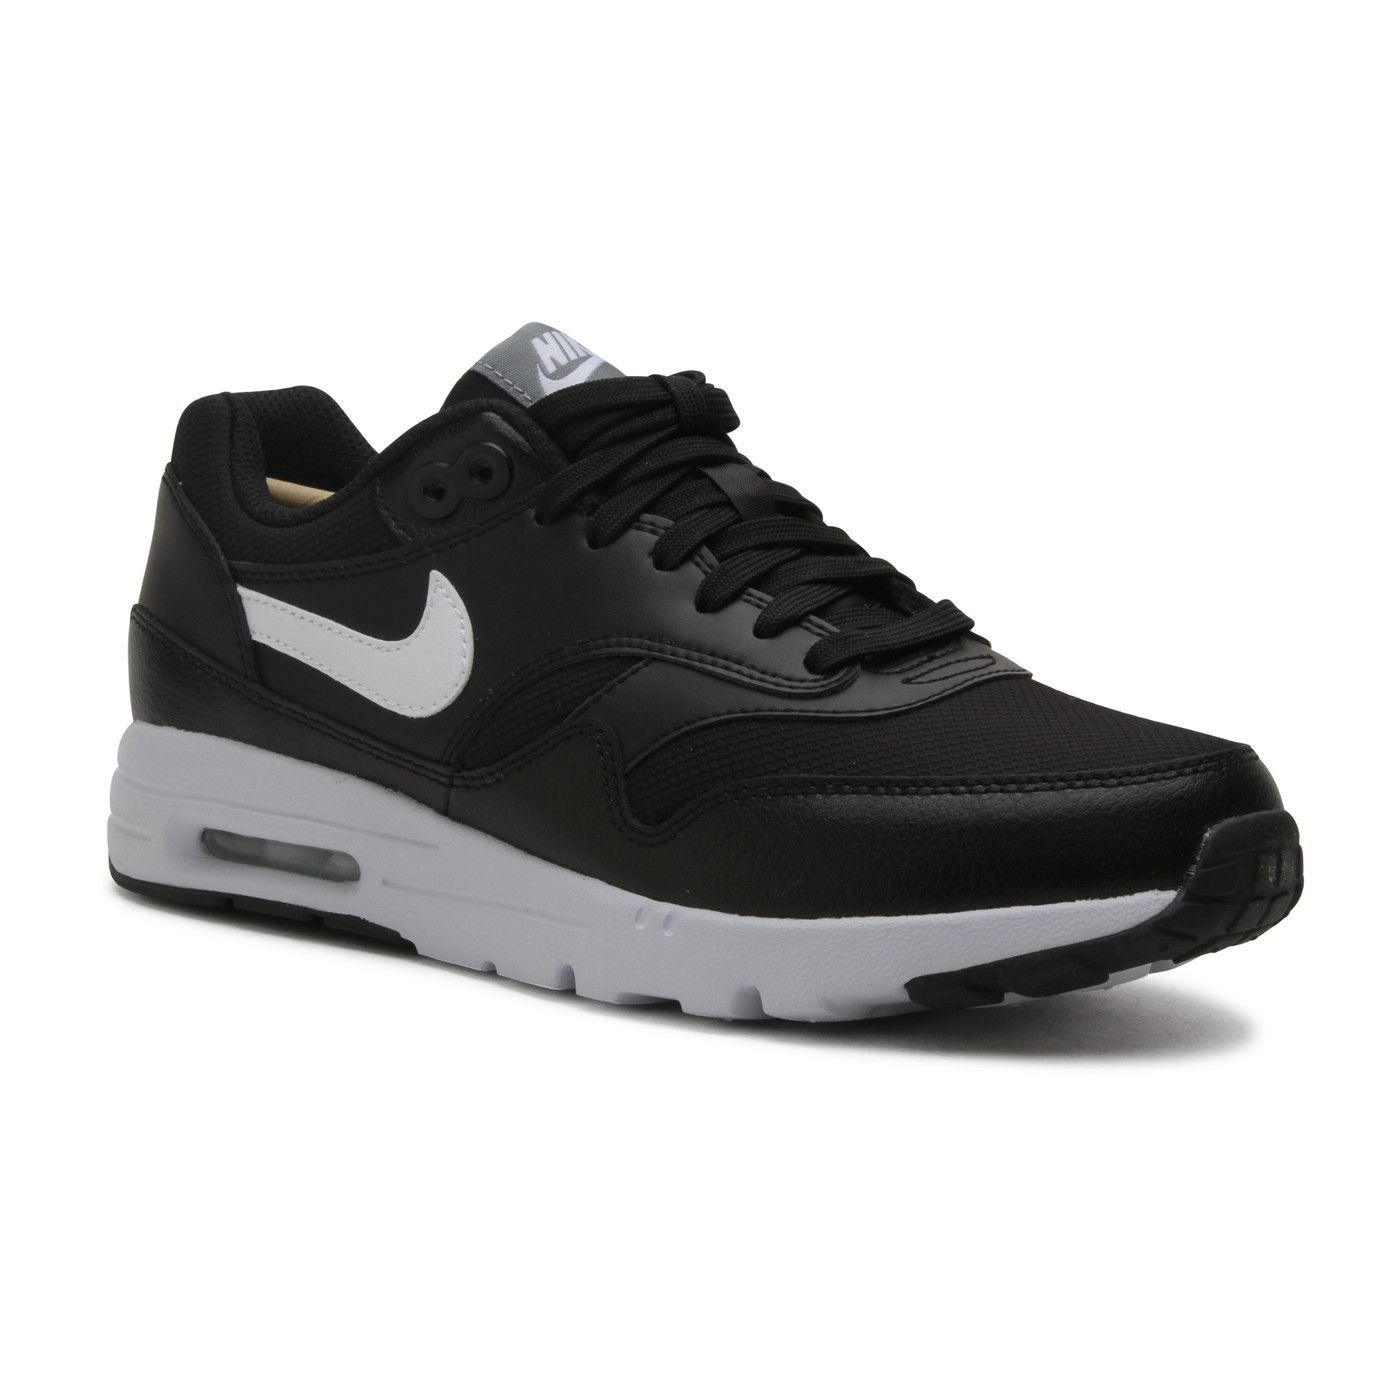 Nike Air Max 1 Ultra Essential 704993 007 | Nike air, Air